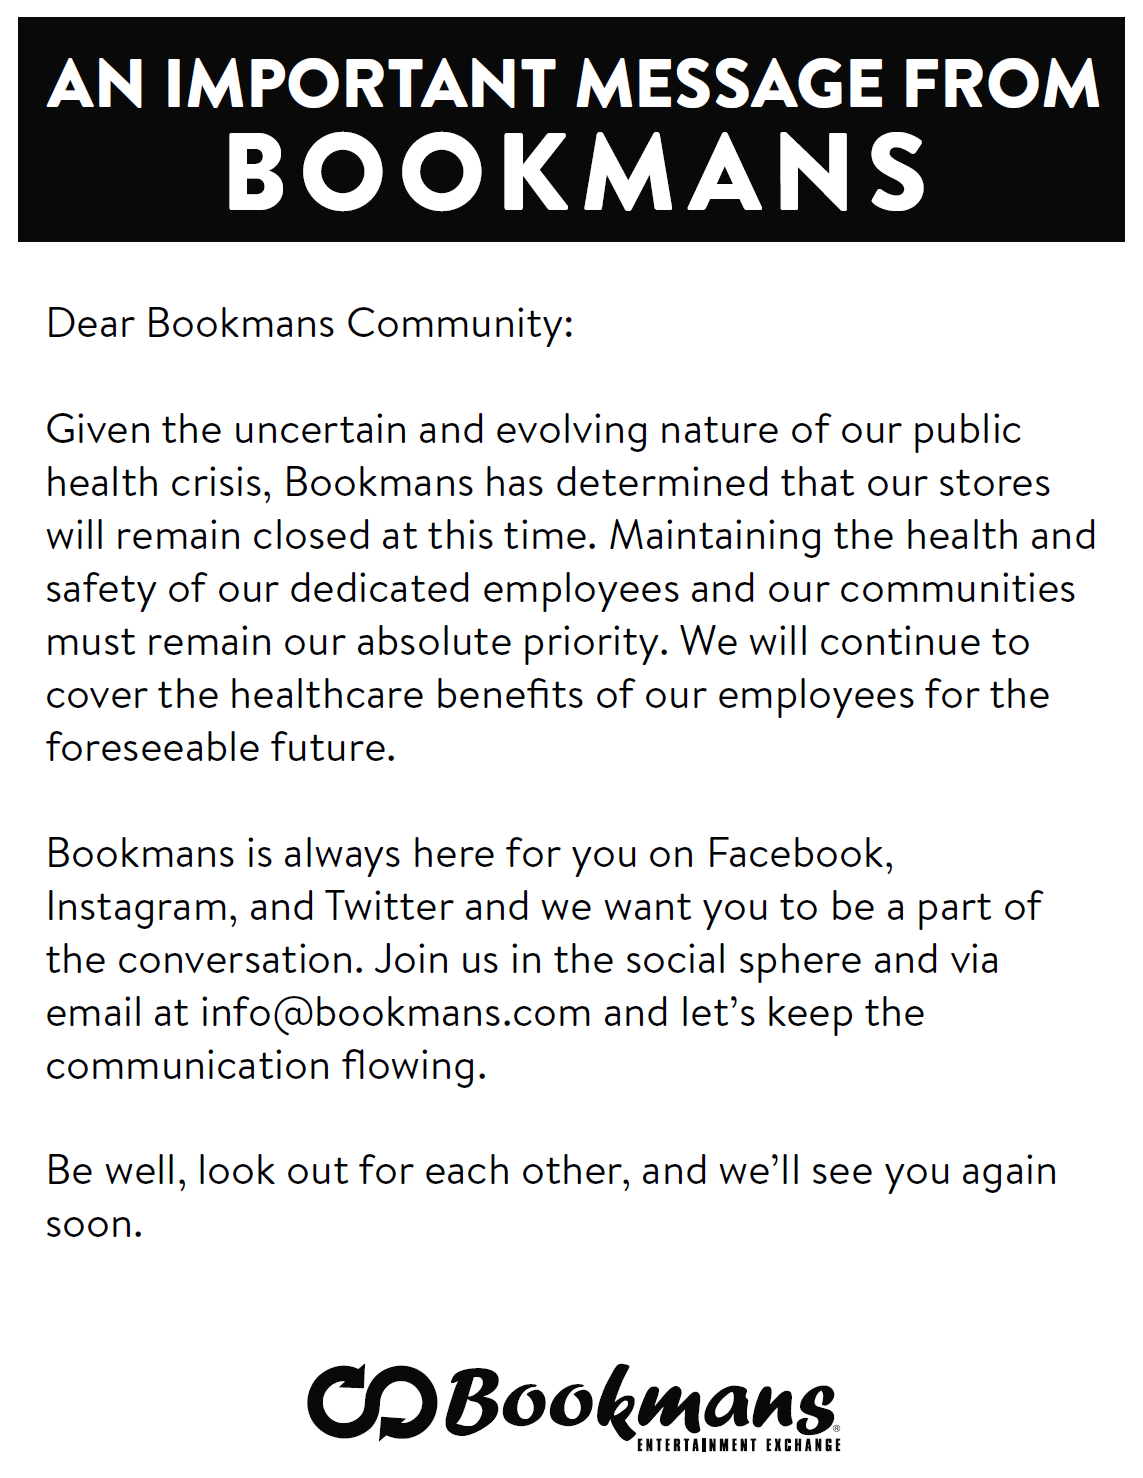 An Important Message From Bookmans Bookmans Entertainment Exchange